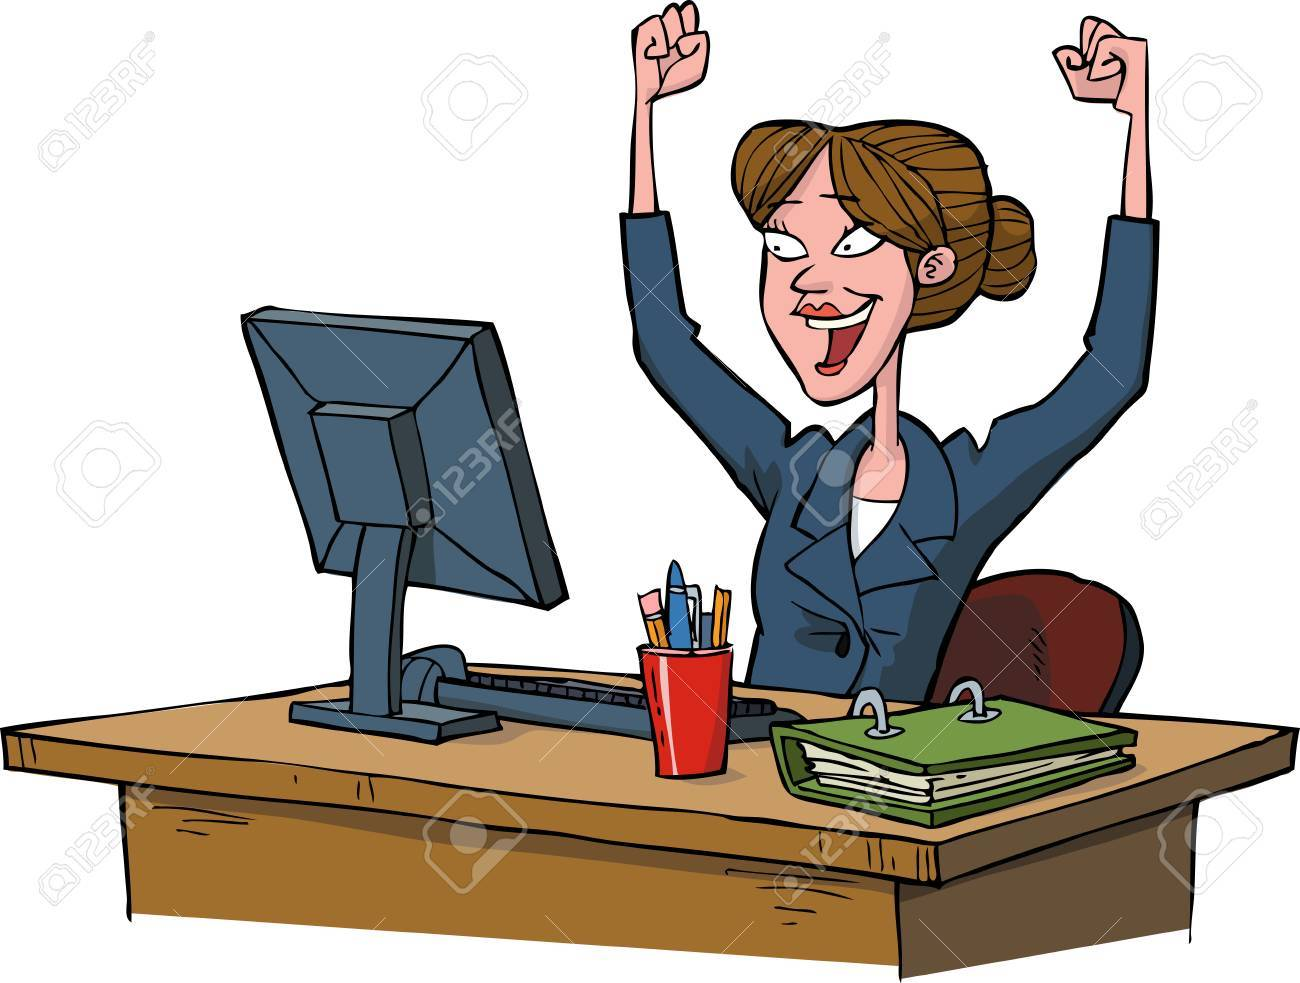 Business woman rejoices at a computer vector illustration - 52020502